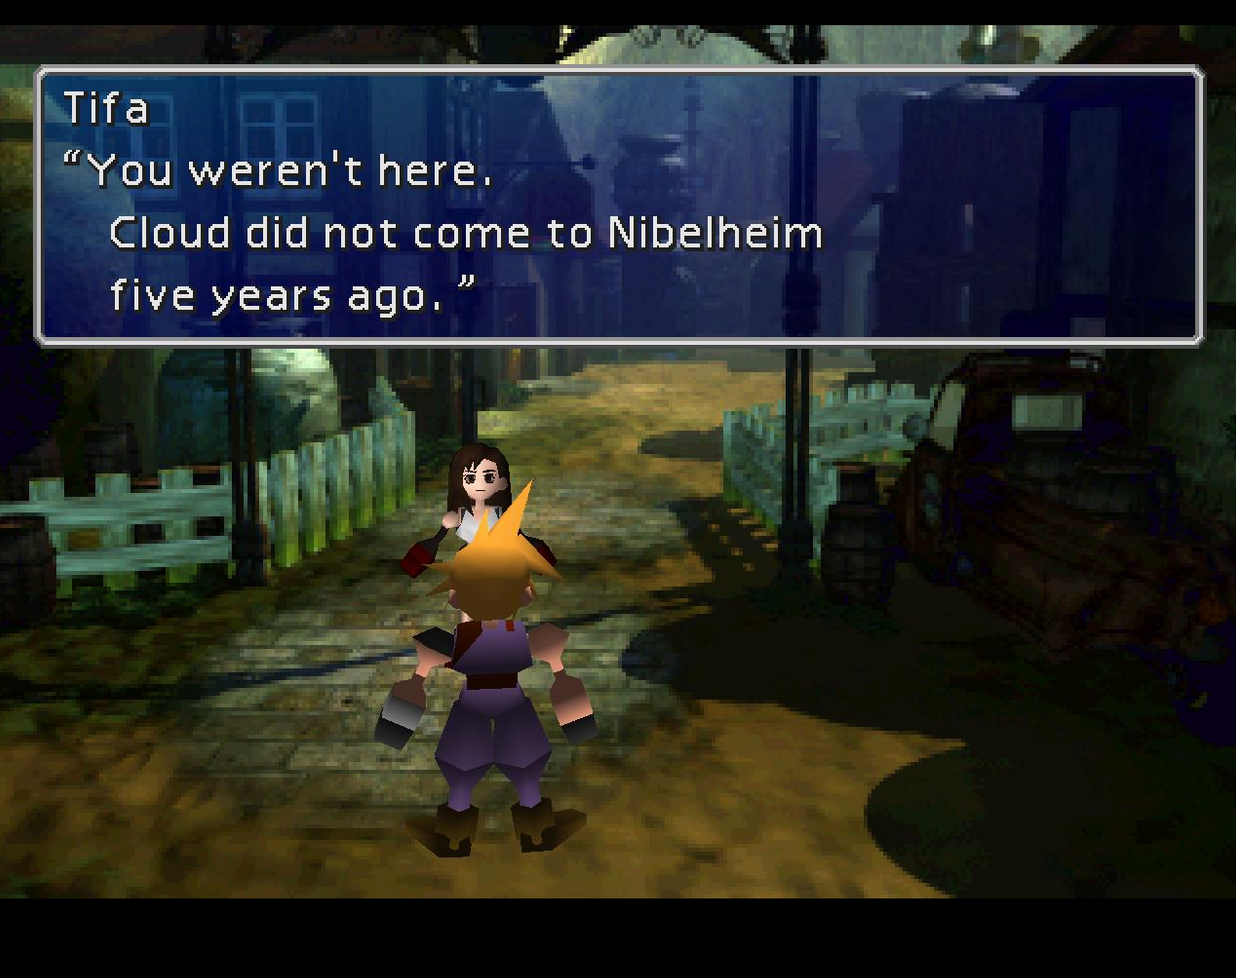 Tifa correcting Cloud's memories